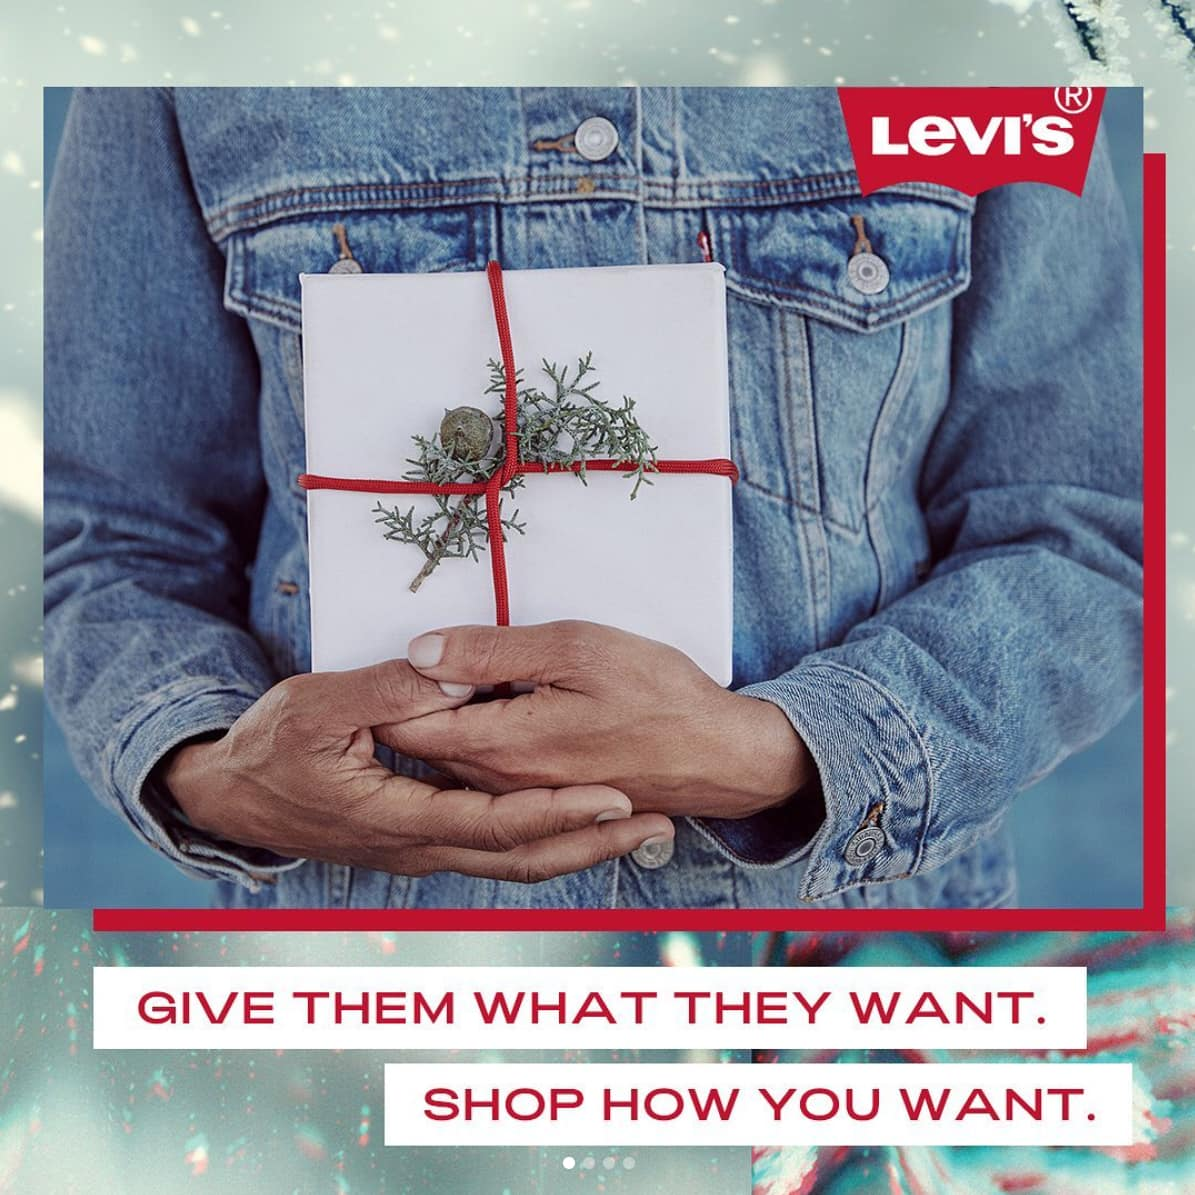 levis_holiday_2020_9